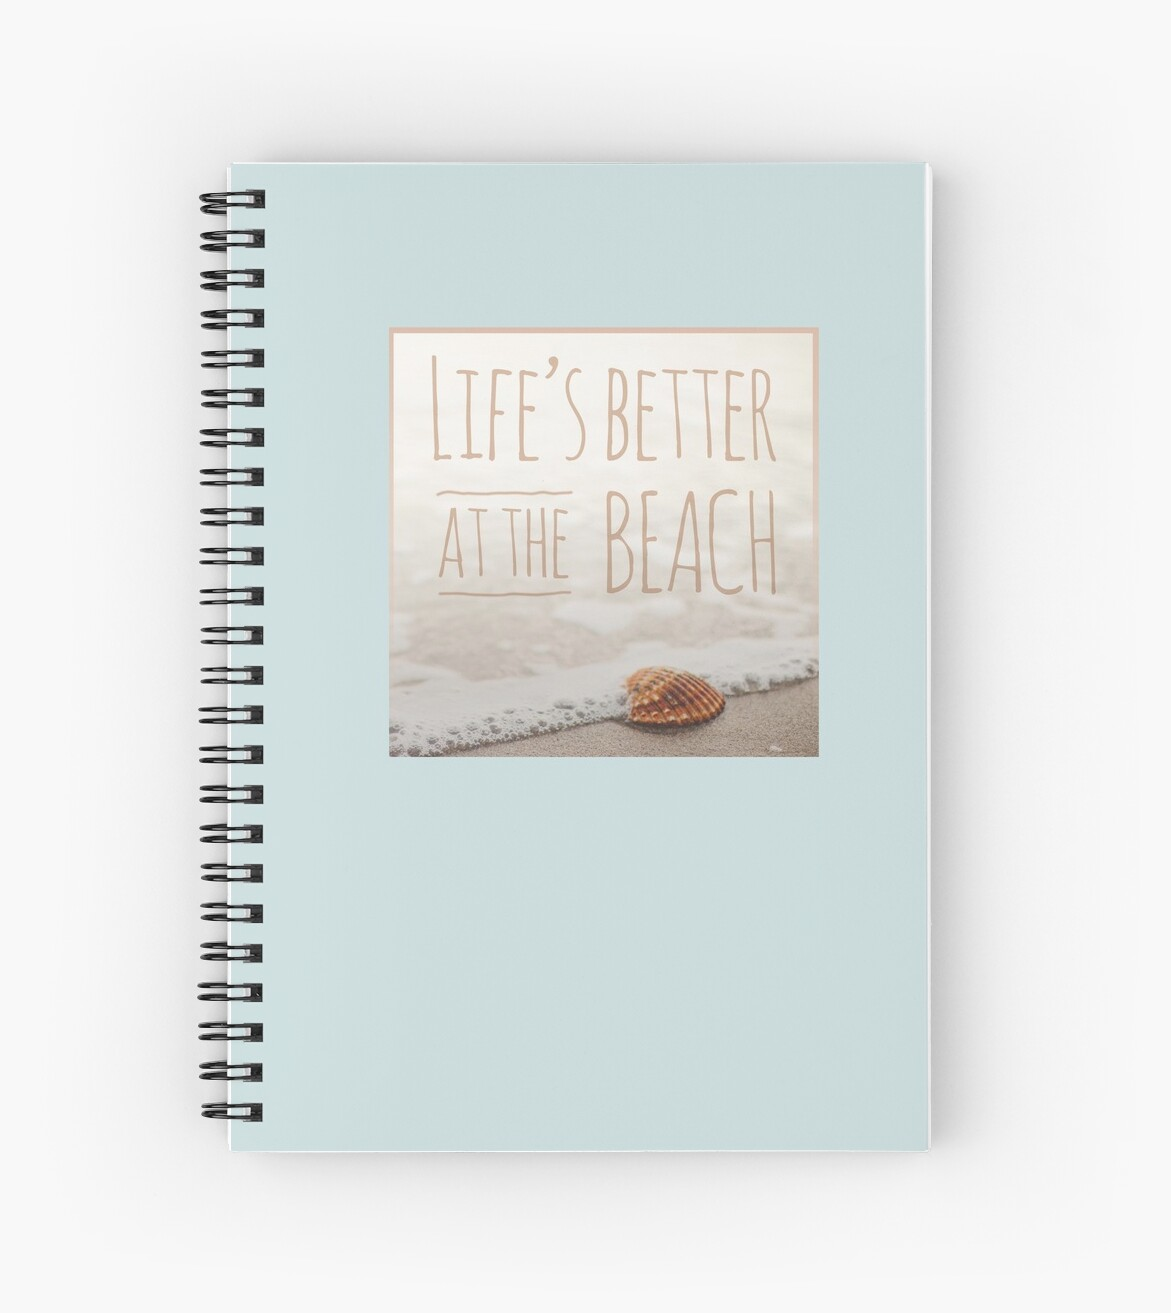 Life's Better at the Beach by Sharon Felschow